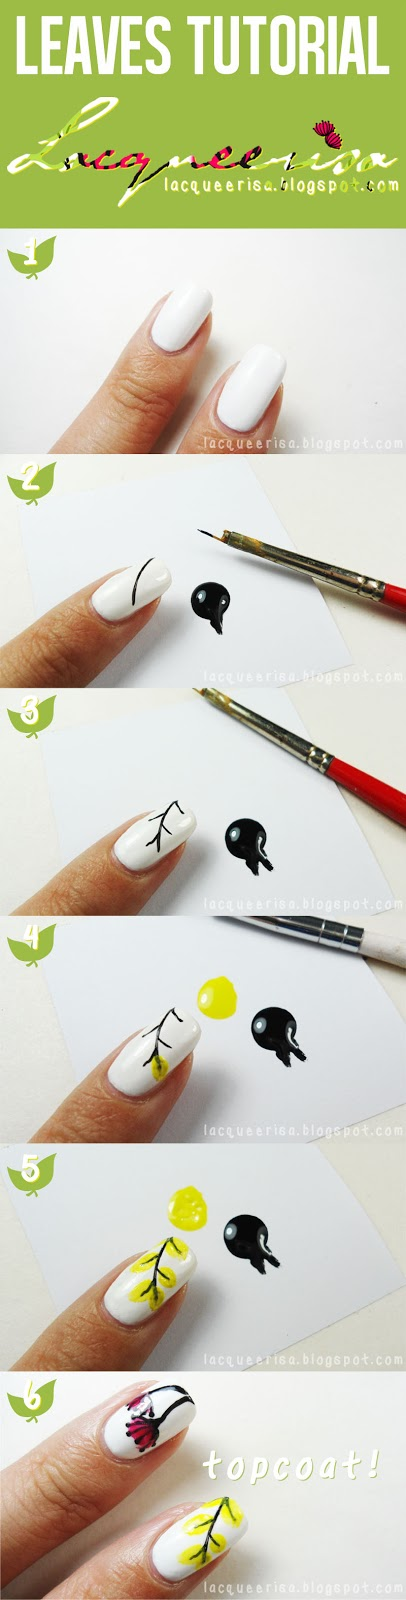 Simple Leaves Tutorial by Lacqueerisa